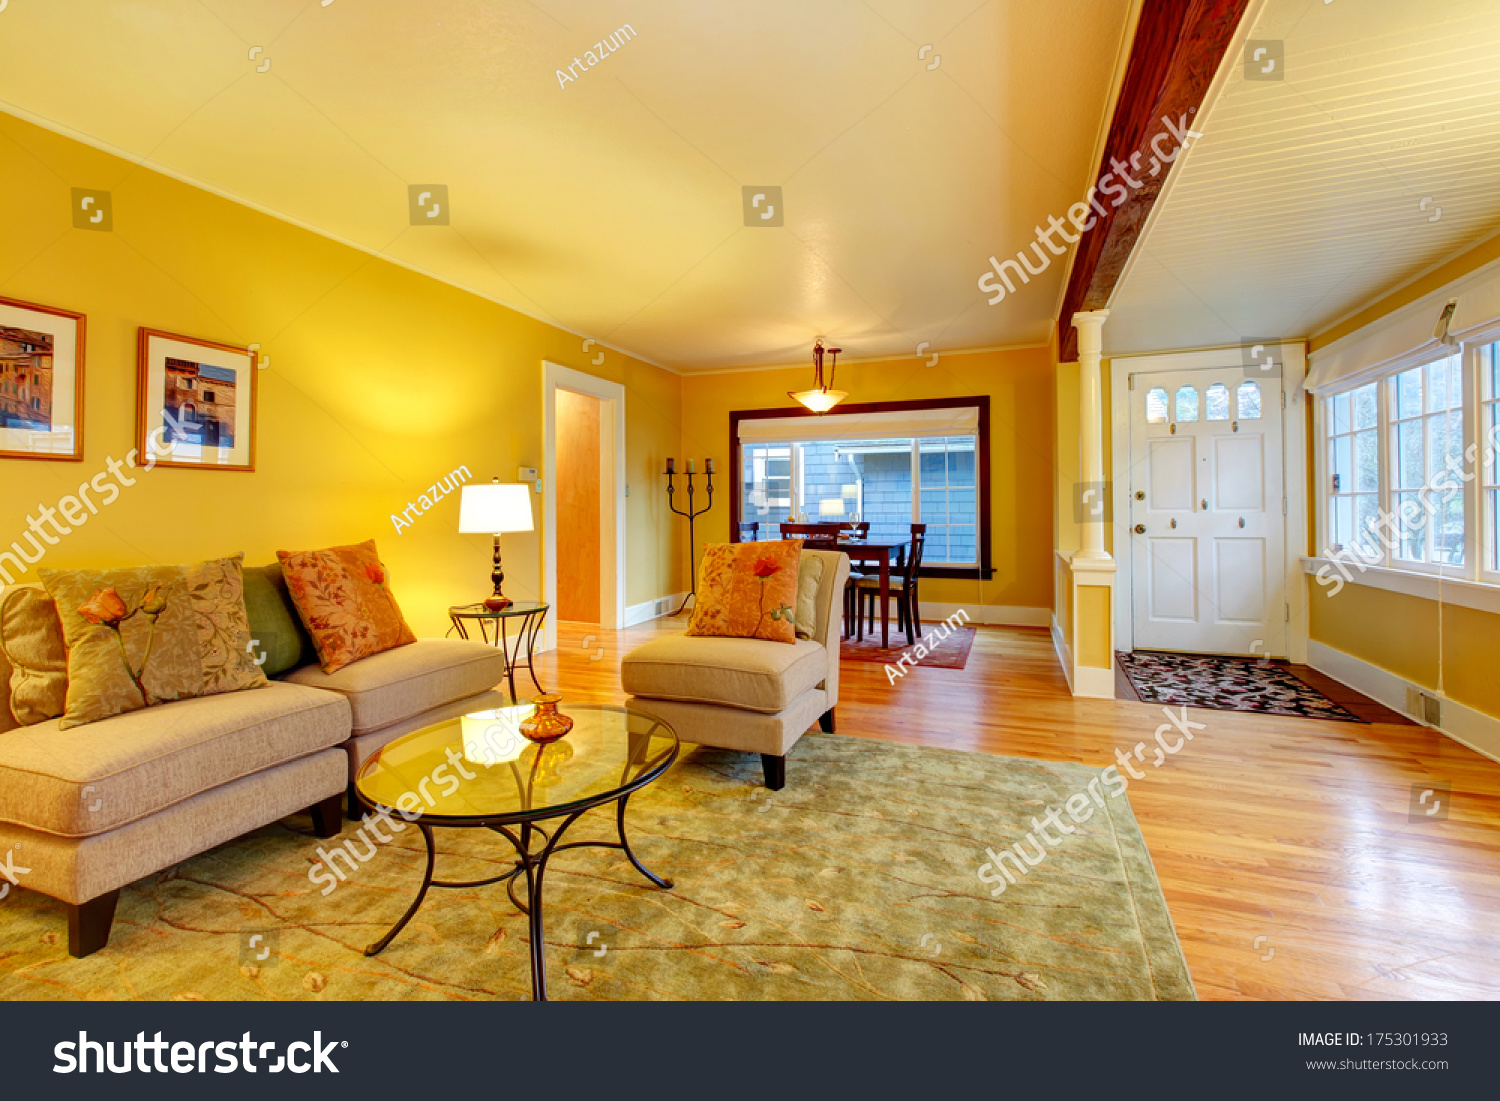 Furnished Living Room Entrance Hall Dining Stock Photo (Royalty Free ...